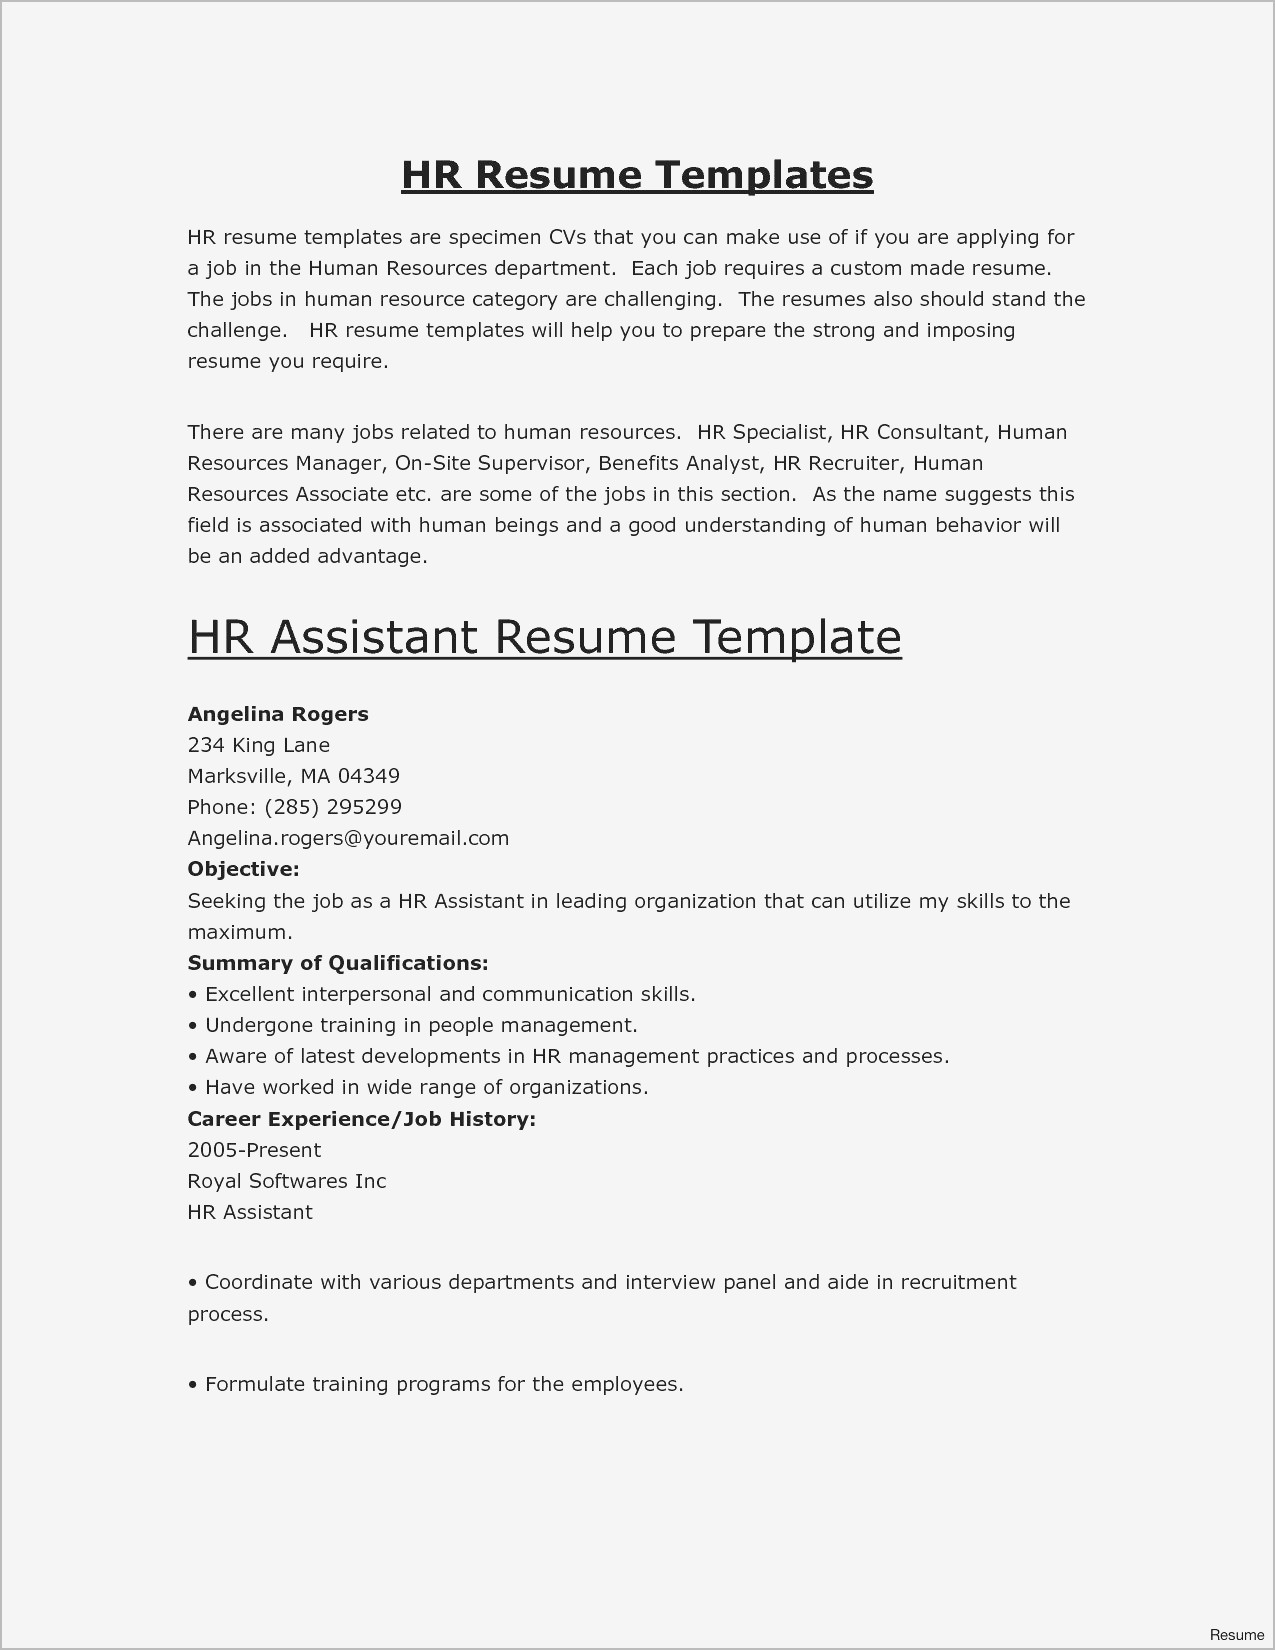 Resume Words for Manage - Resume Keywords and Phrases New Resume Key Words Unique Keywords for